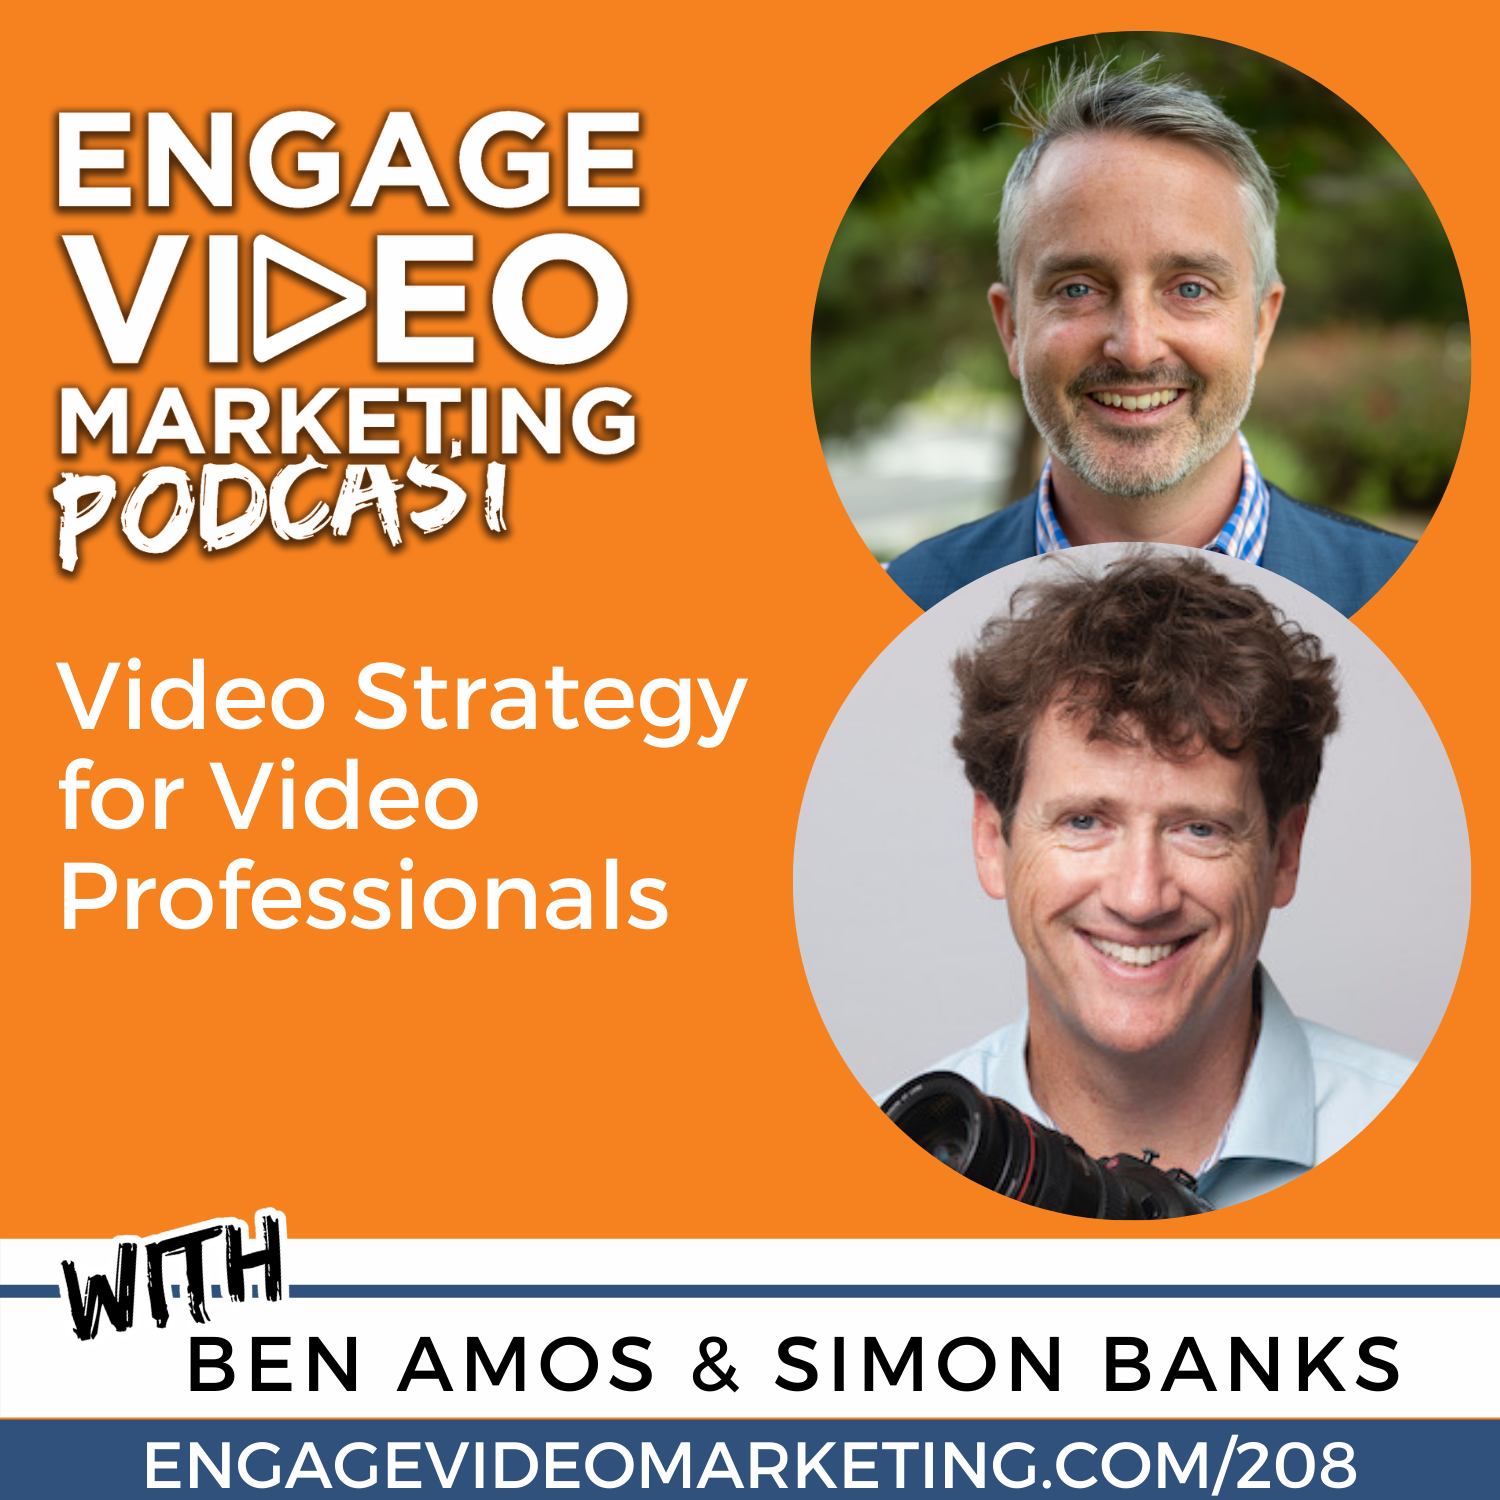 Video Strategy for Video Professionals with Ben Amos and Simon Banks